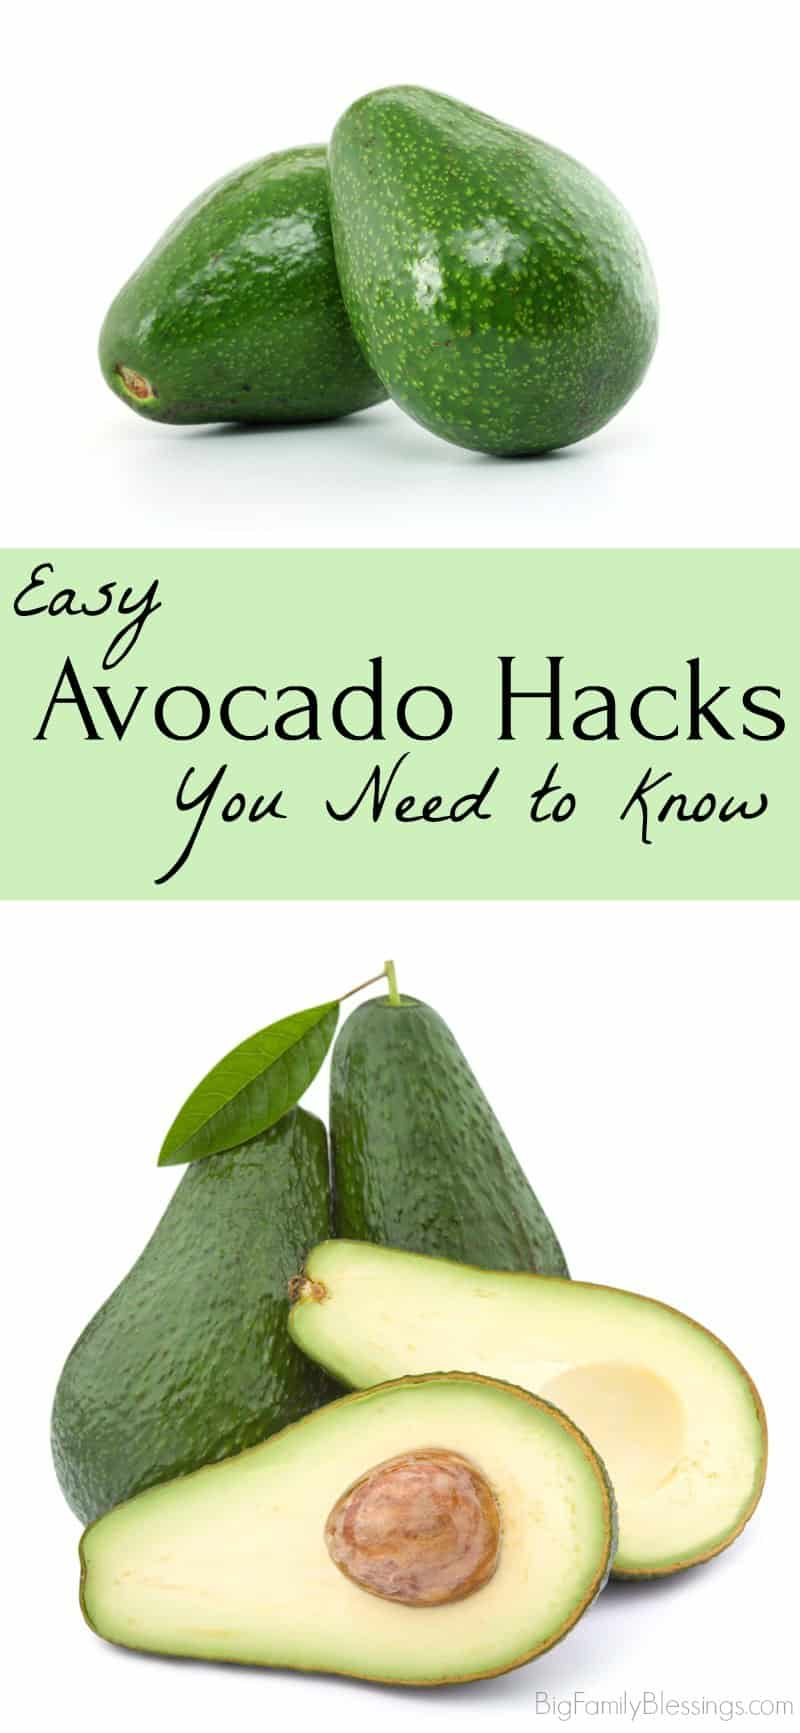 Easy avocado hacks you need to know. Tips and tricks for choosing, using, and storing avocados.